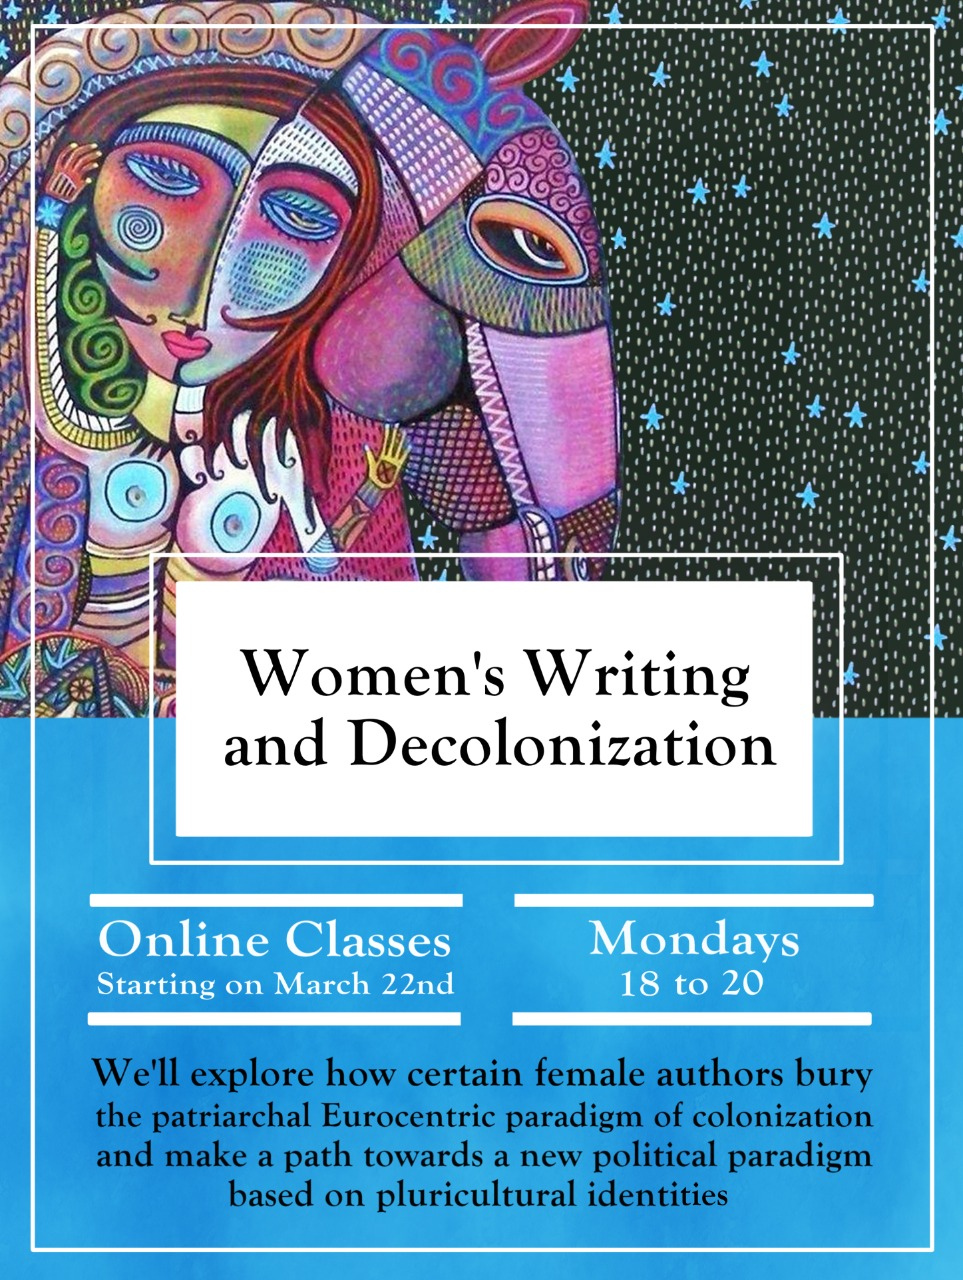 Women's writing and decolonization